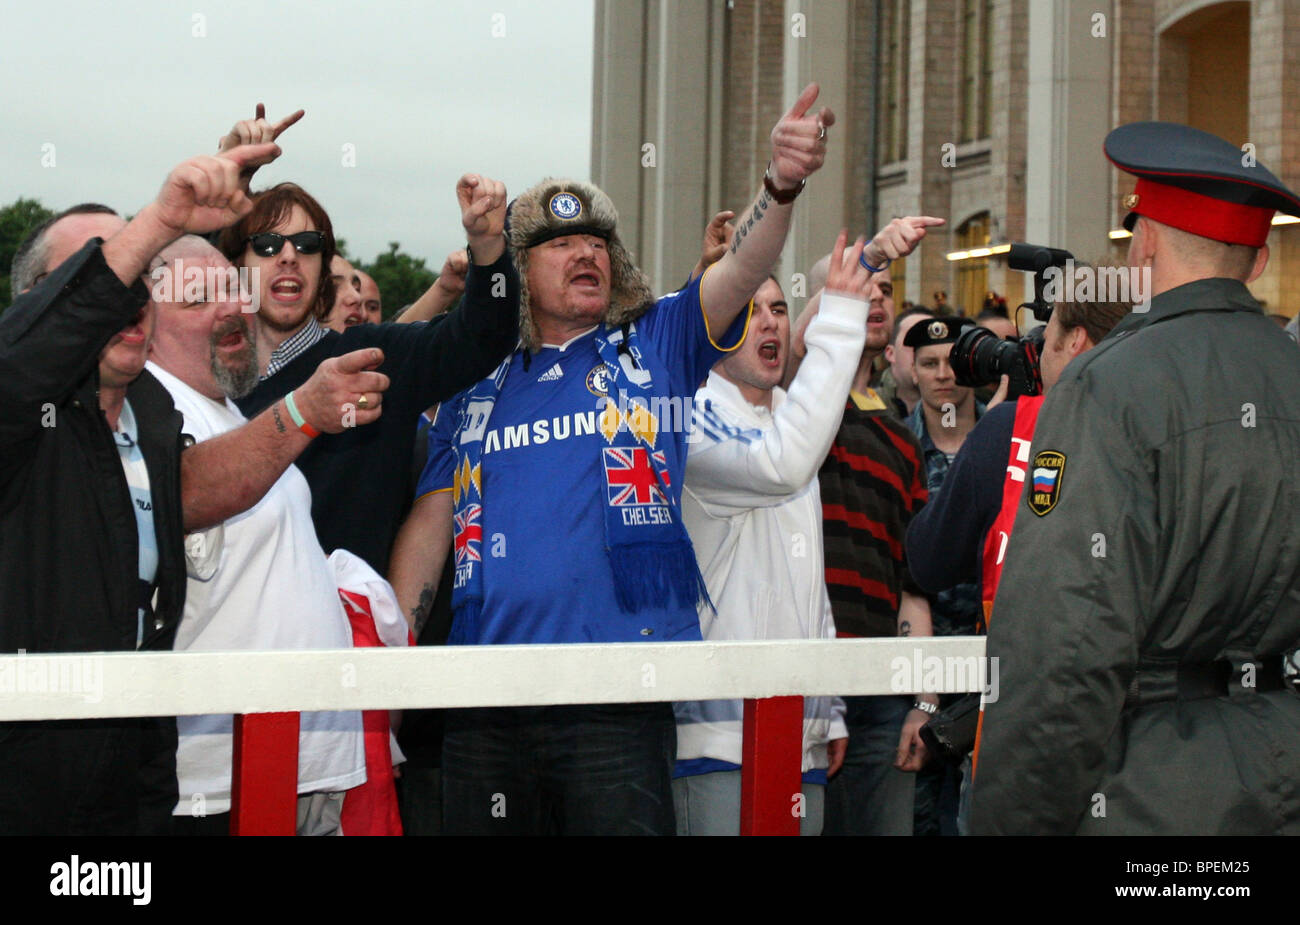 British fans touring Moscow - Stock Image